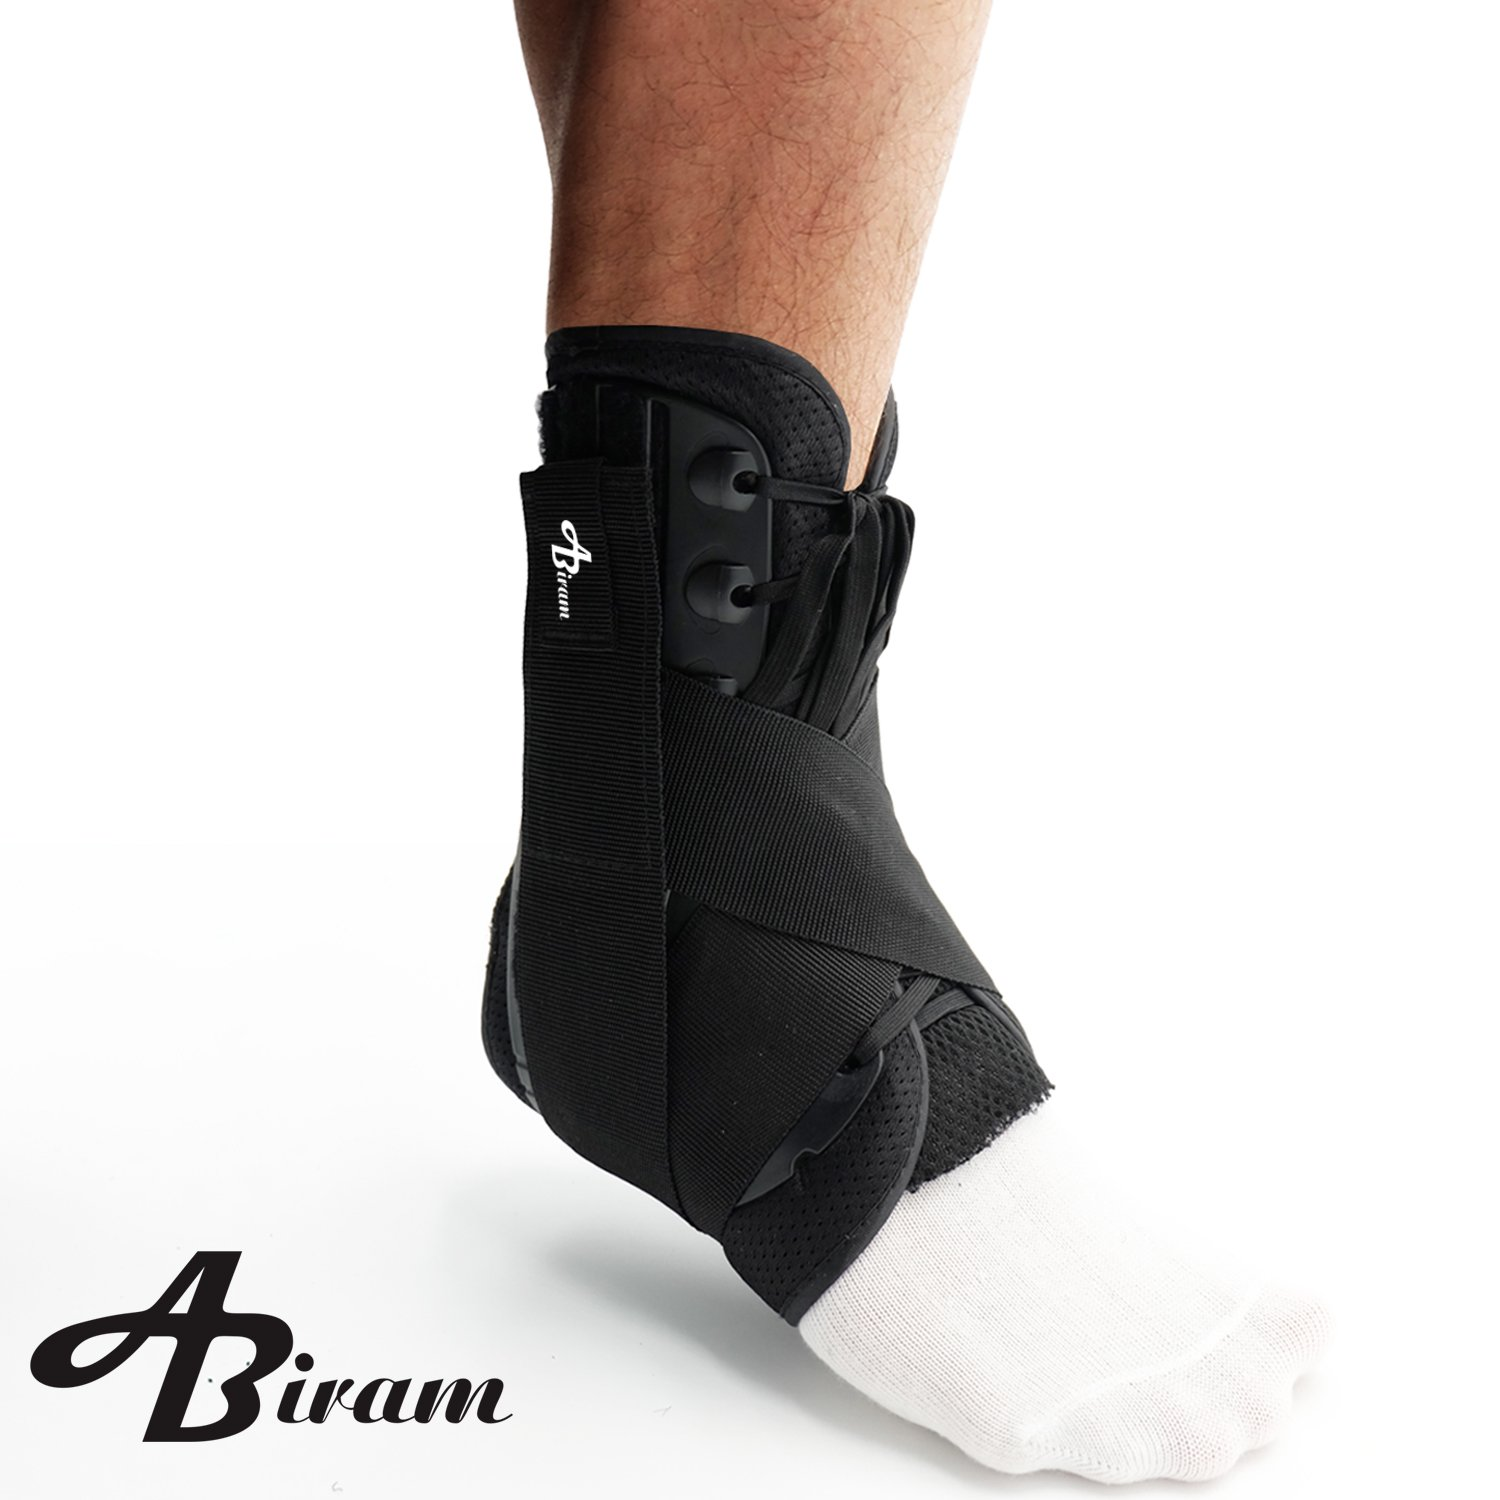 Ankle Brace, Lace Up Adjustable Support Stabilizer -Foot Pain Relief from Heel Spurs & Plantar,Fasciitis,Sprained Foot, Tendonitis, Injury Recovery-For Running, Volleyball Basketball